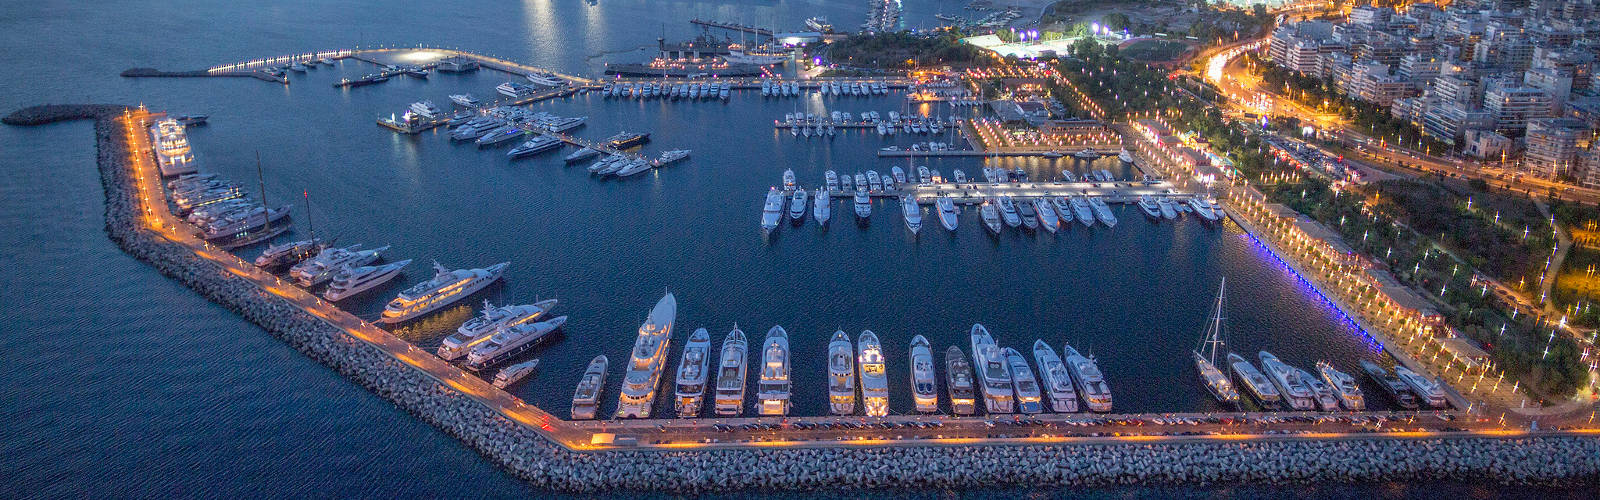 Digital Yacht Week